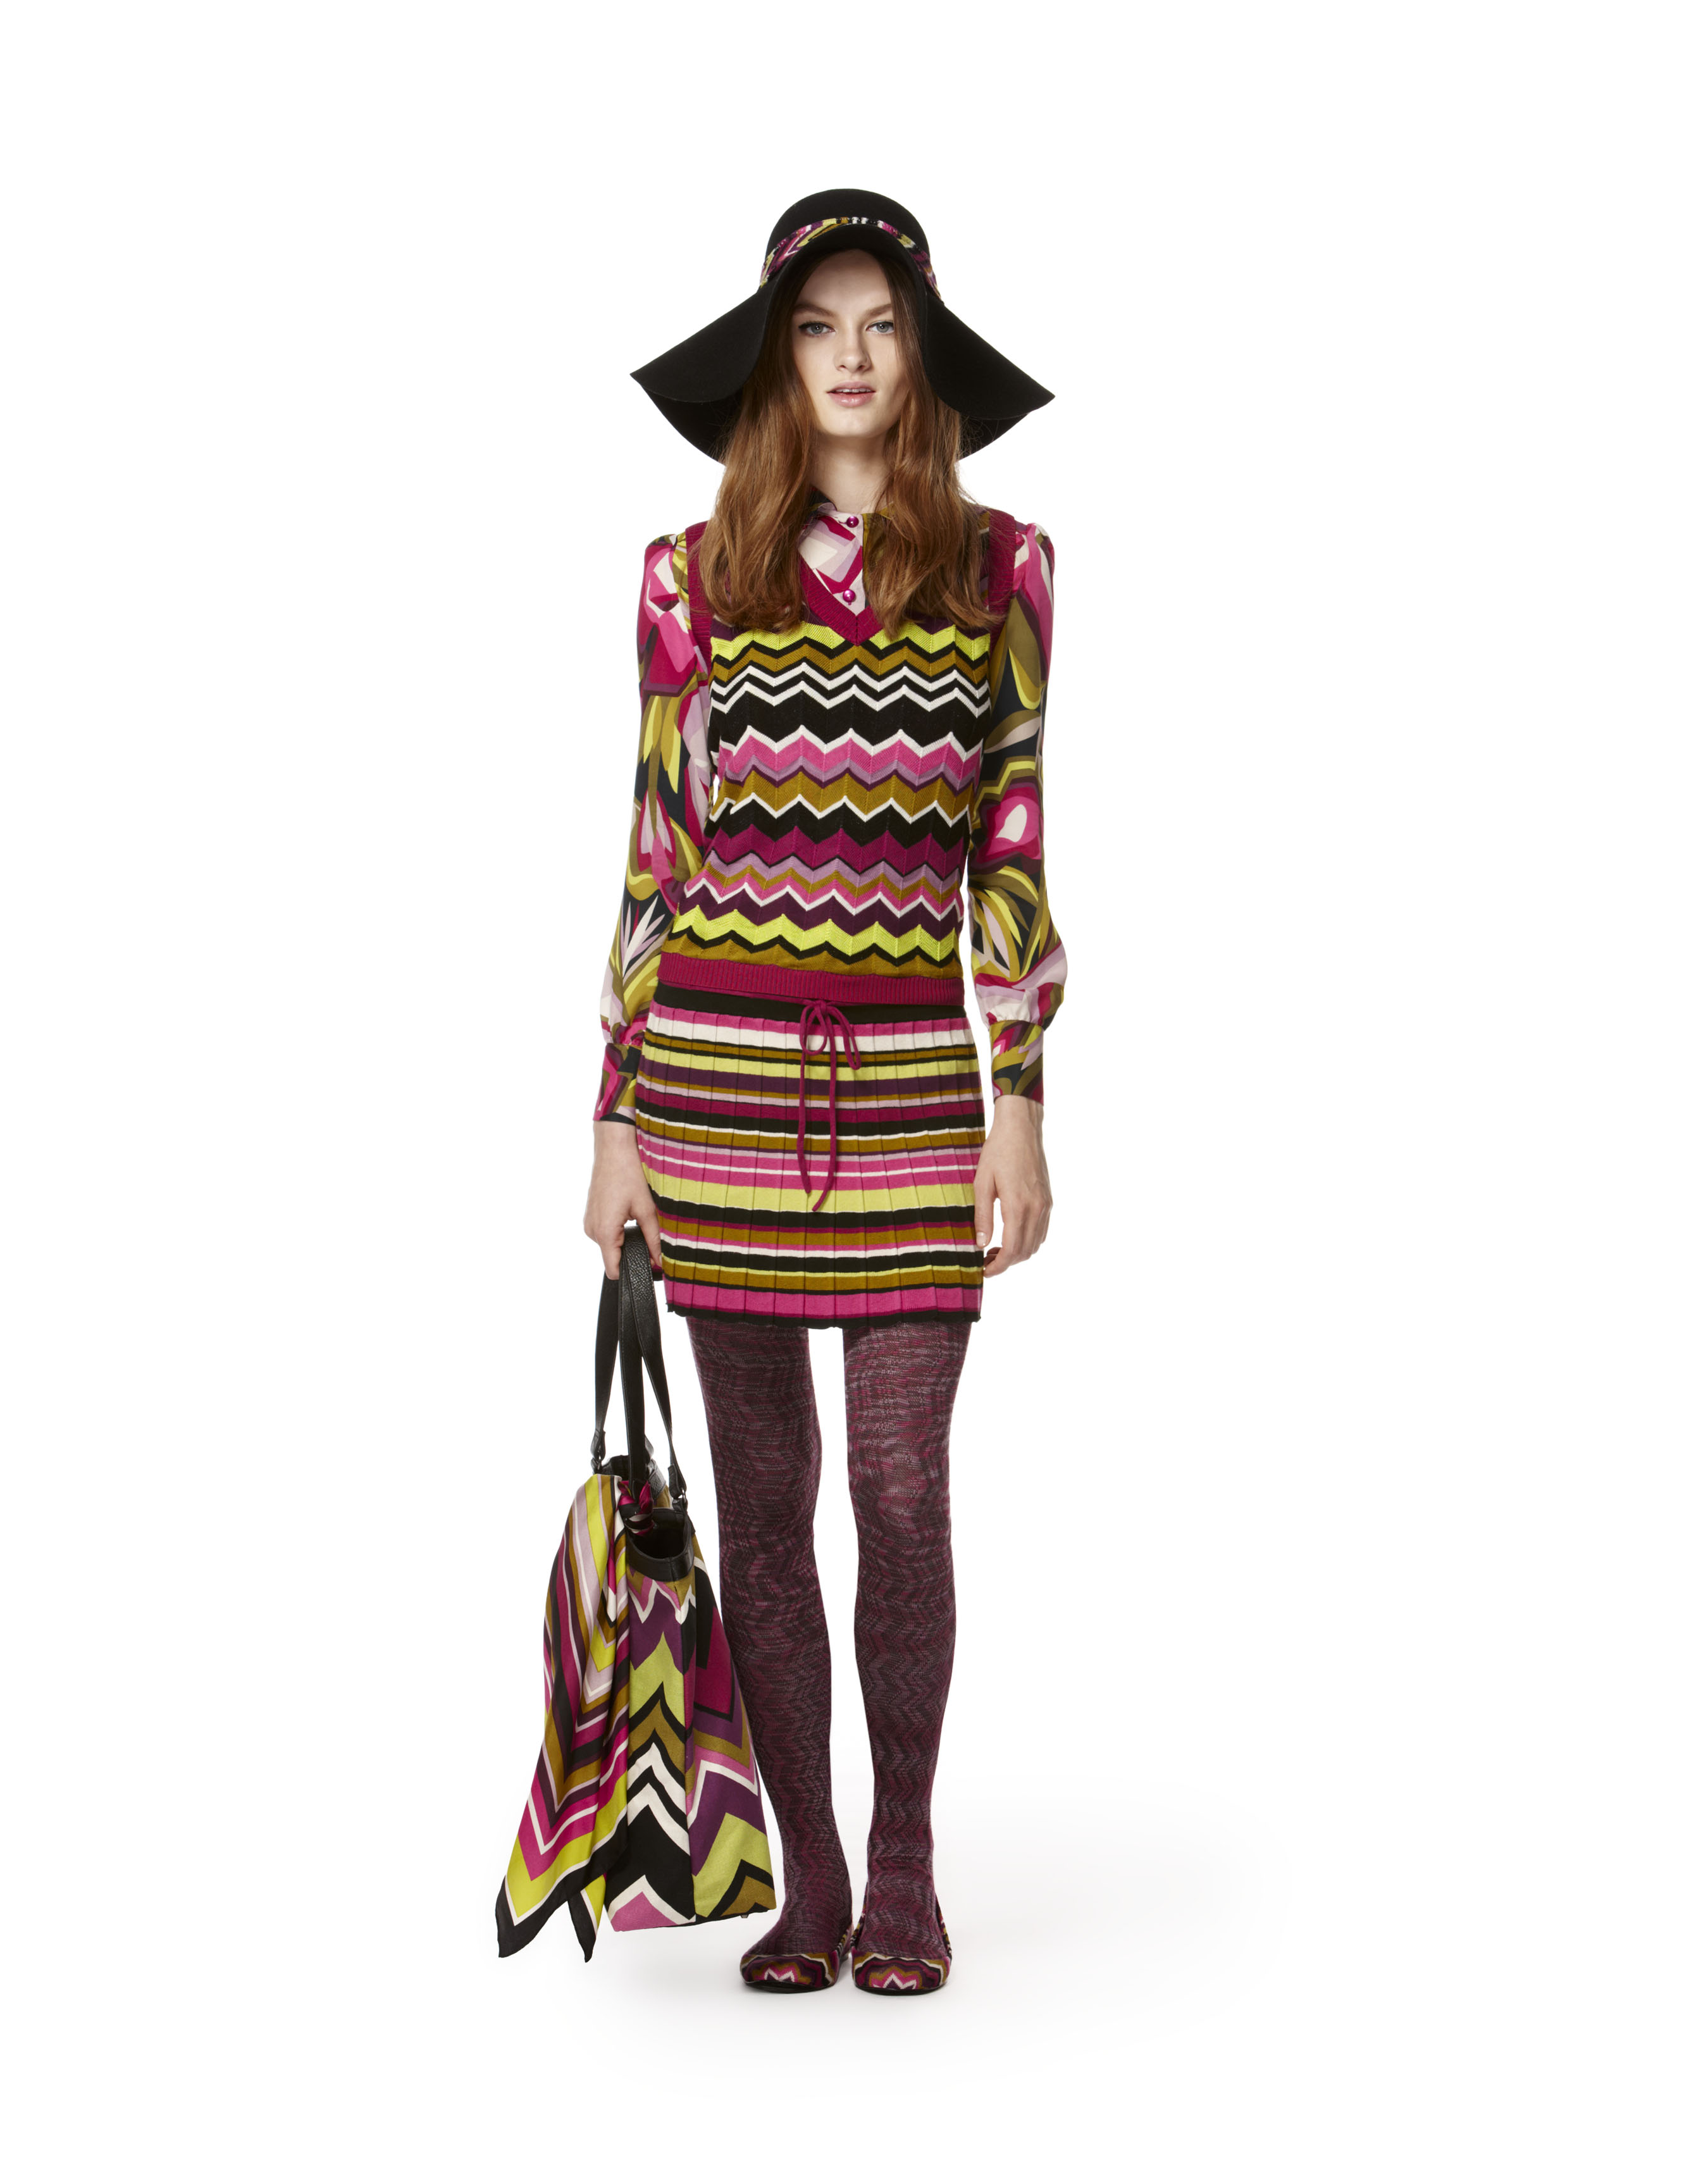 Missoni for Target – Fashion & Home – THPFashion Blog